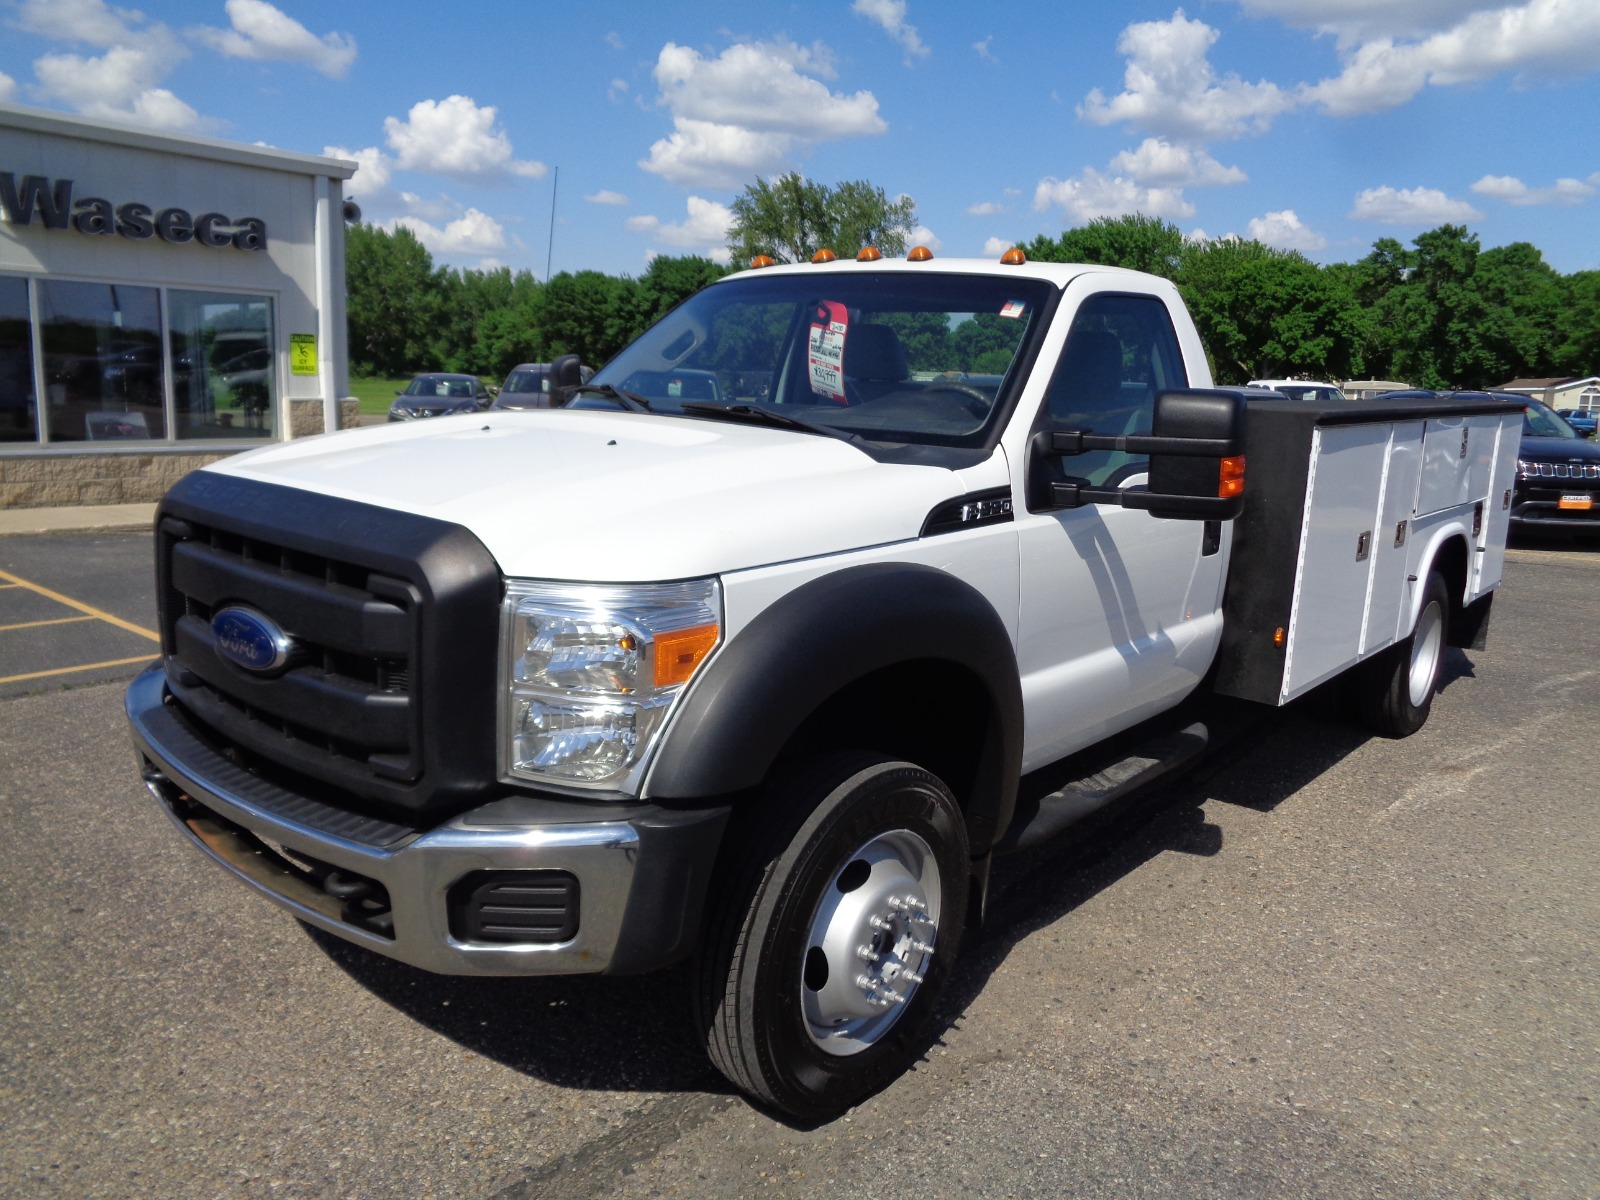 Pre-Owned 2012 Ford Super Duty F-550 Drw